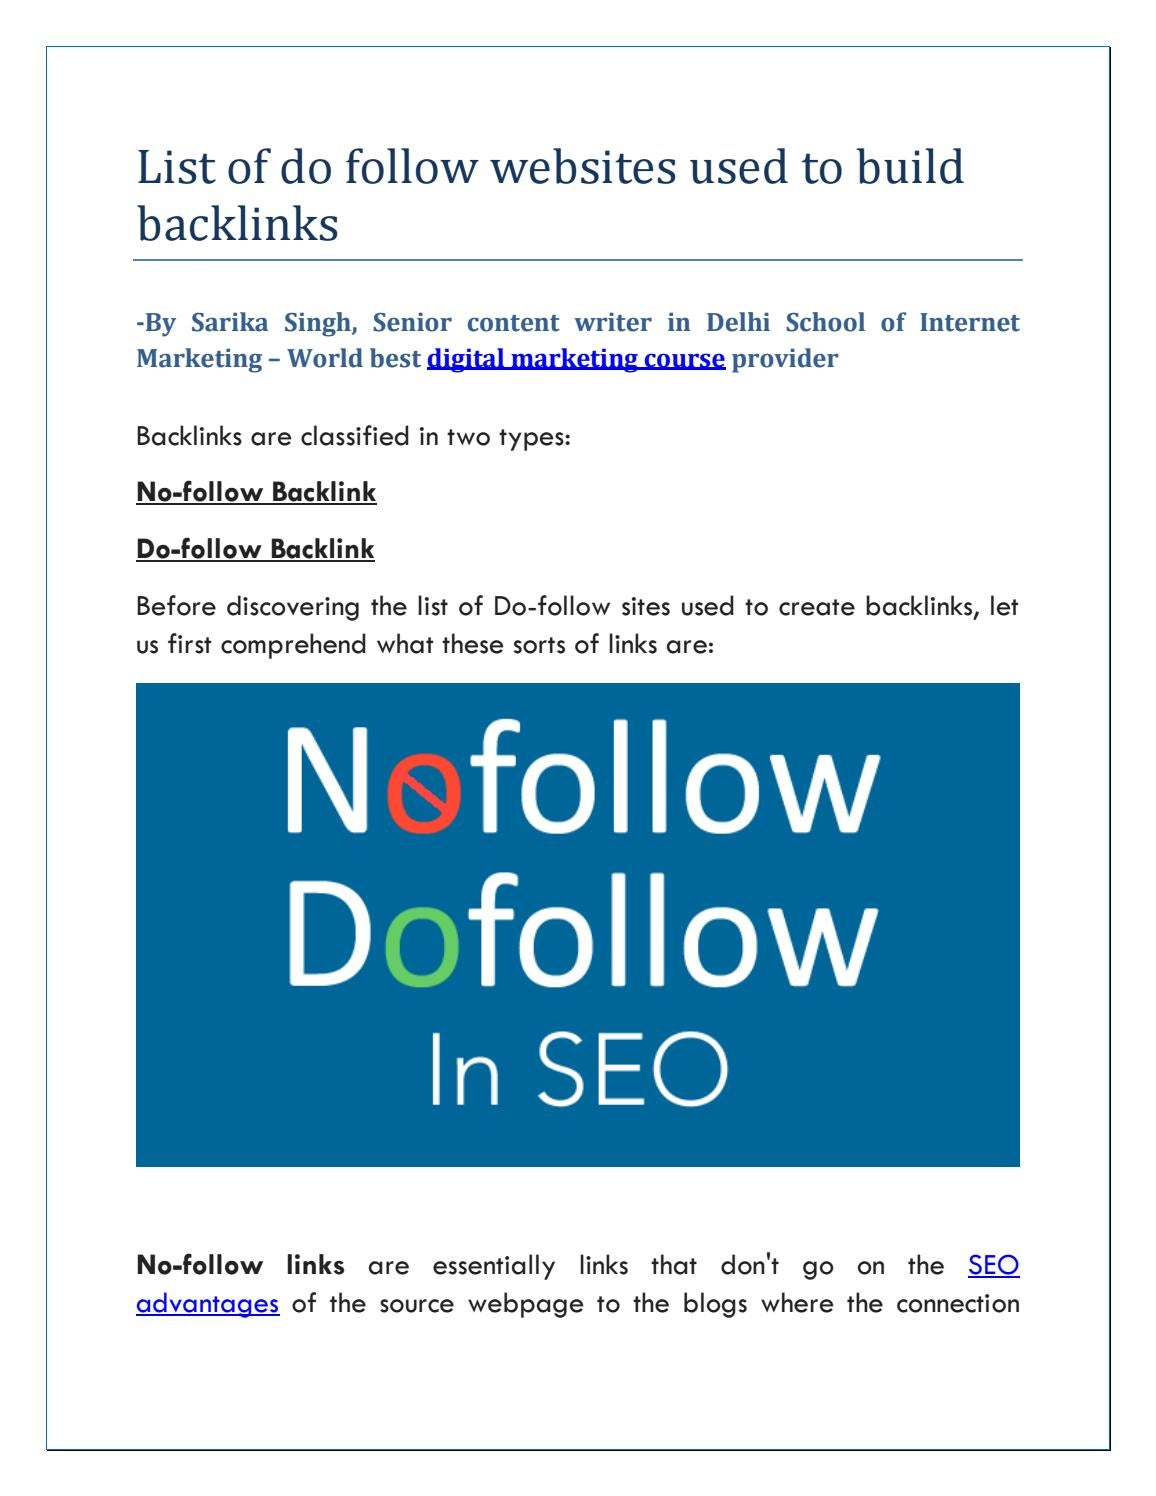 List of do follow websites used to build backlinks by Manju